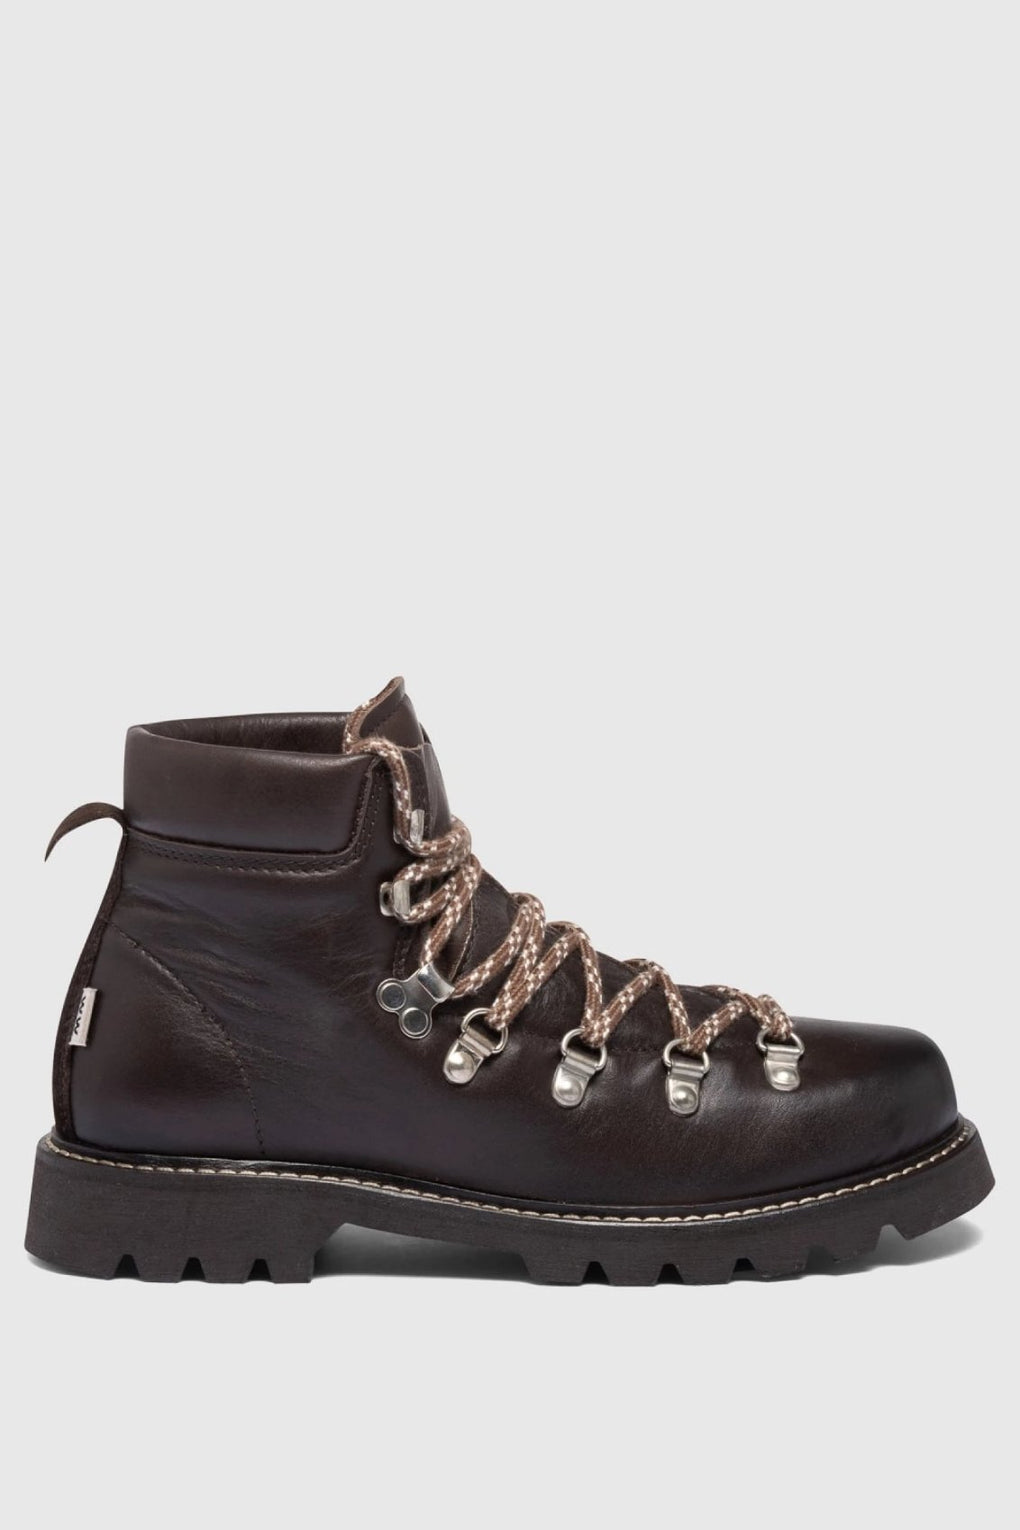 Benny Boot in Dark Brown